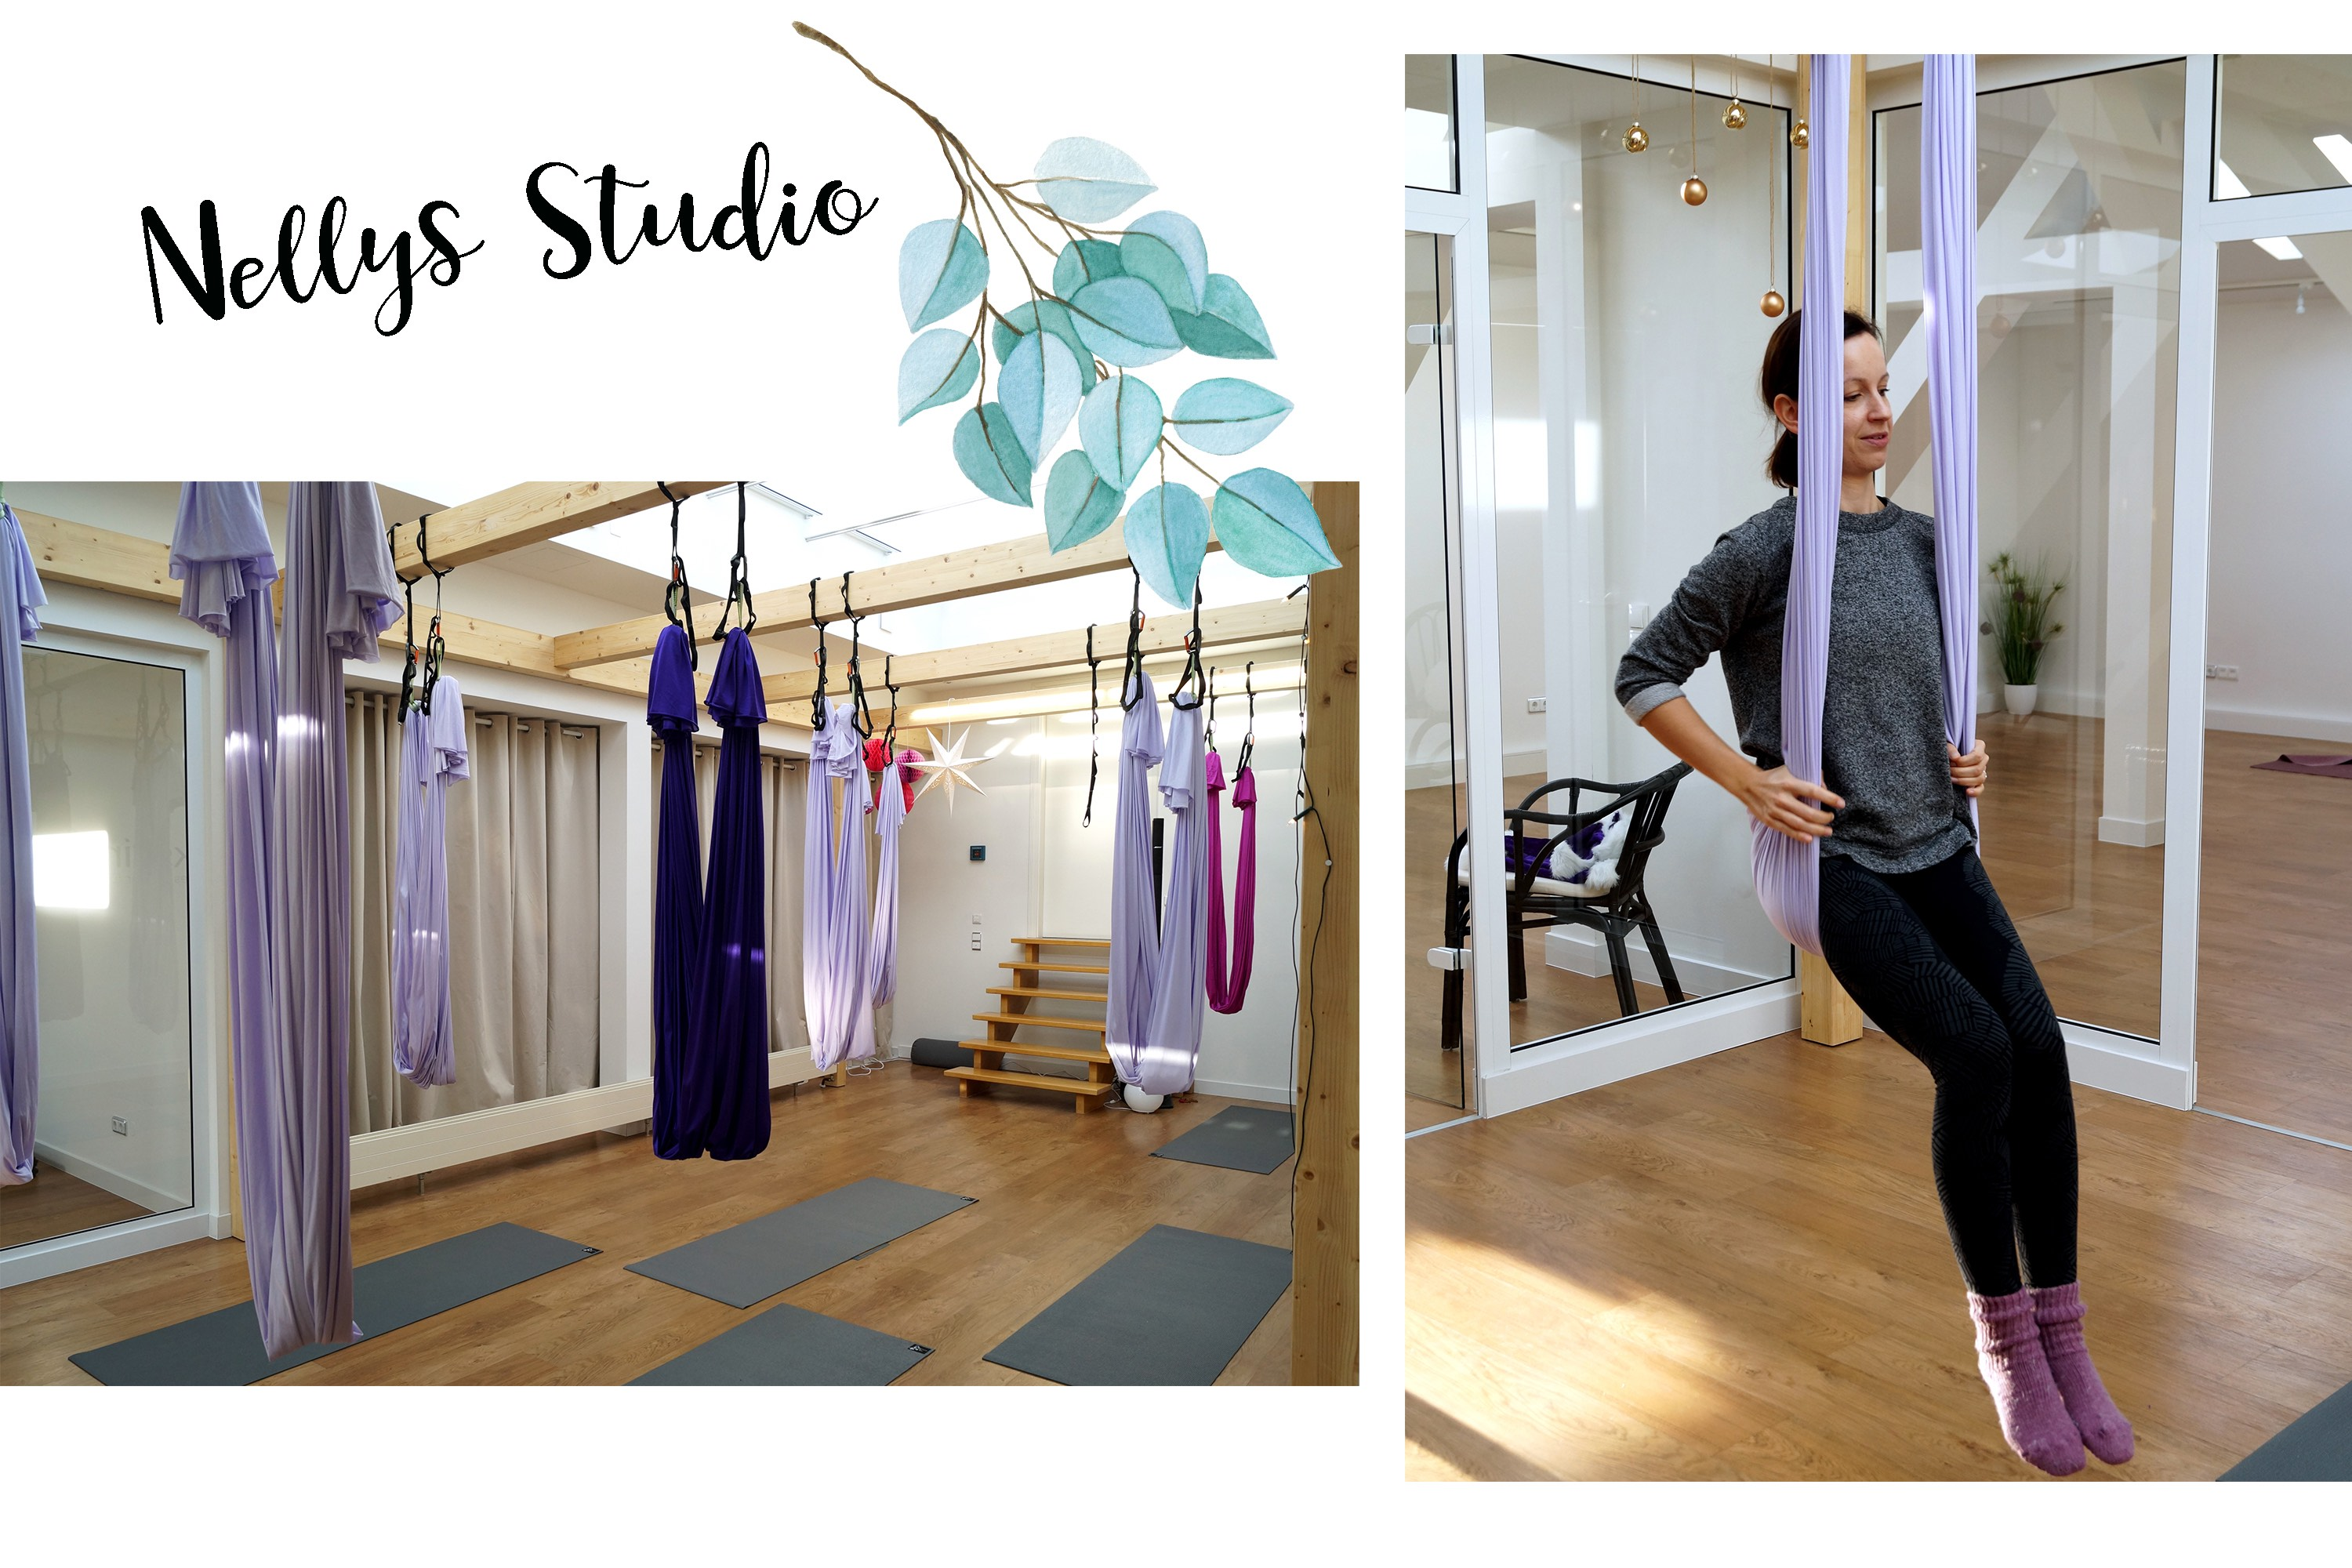 nellys-studio-glueckskind-flying-yoga